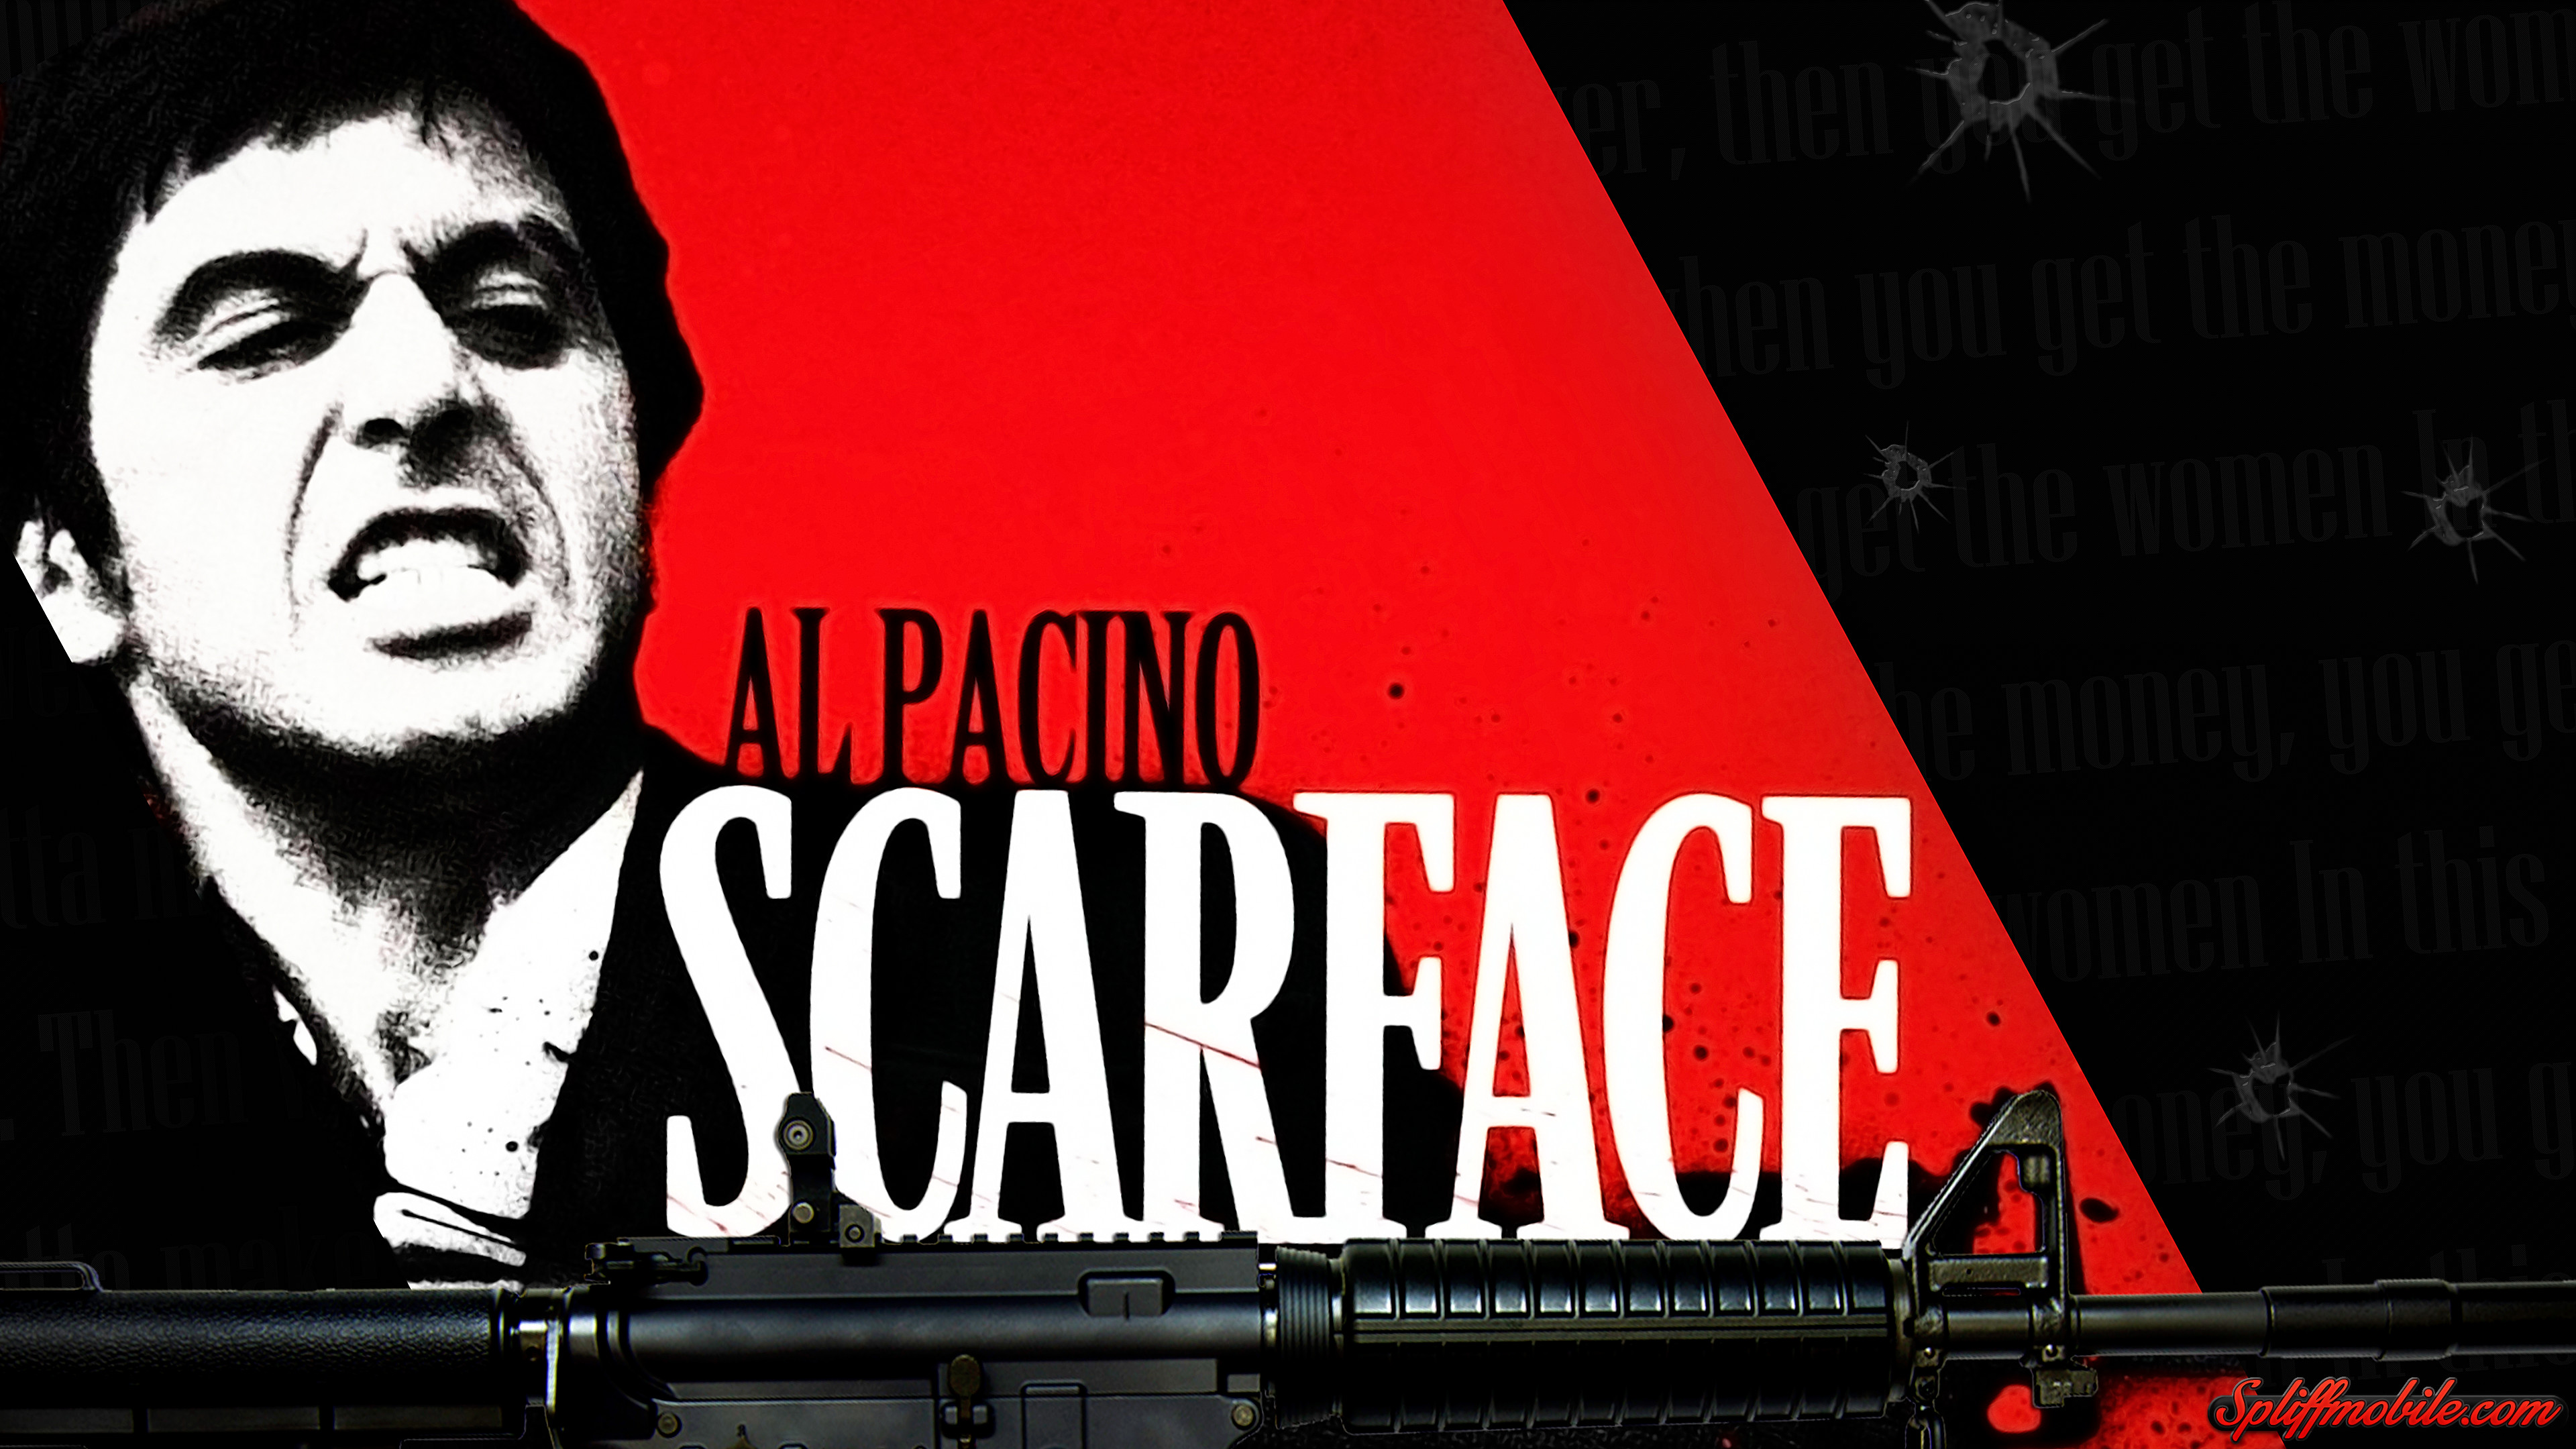 Scarface wallpaper hd wallpapertag - Scarface background ...